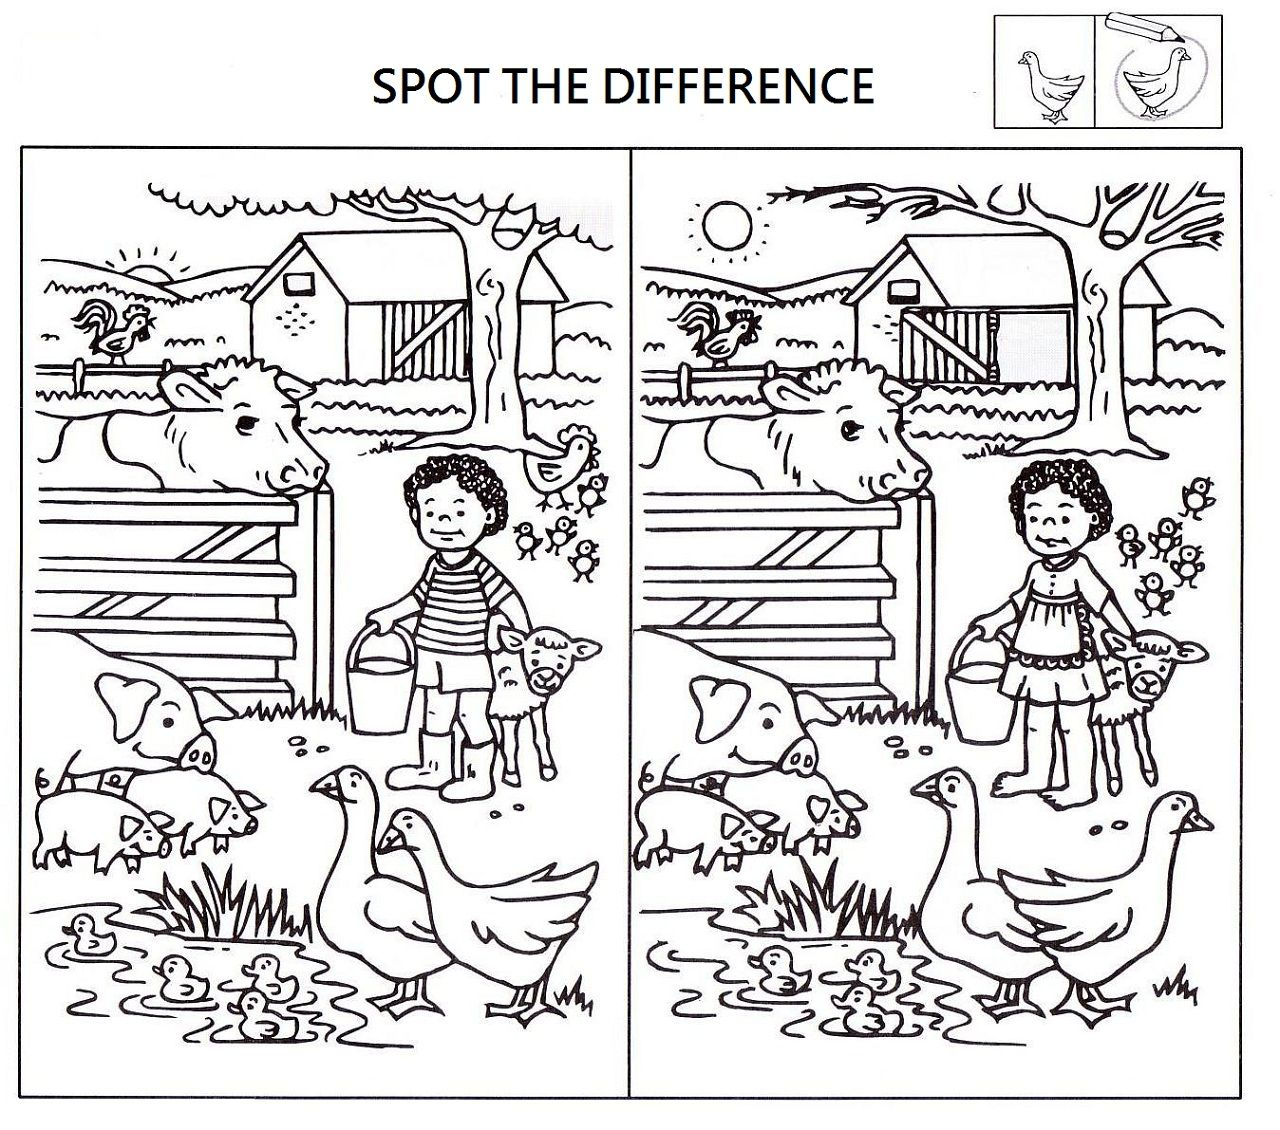 Spot The Difference Worksheets For Kids   Kids Worksheets Printable - Free Printable Spot The Difference Worksheets